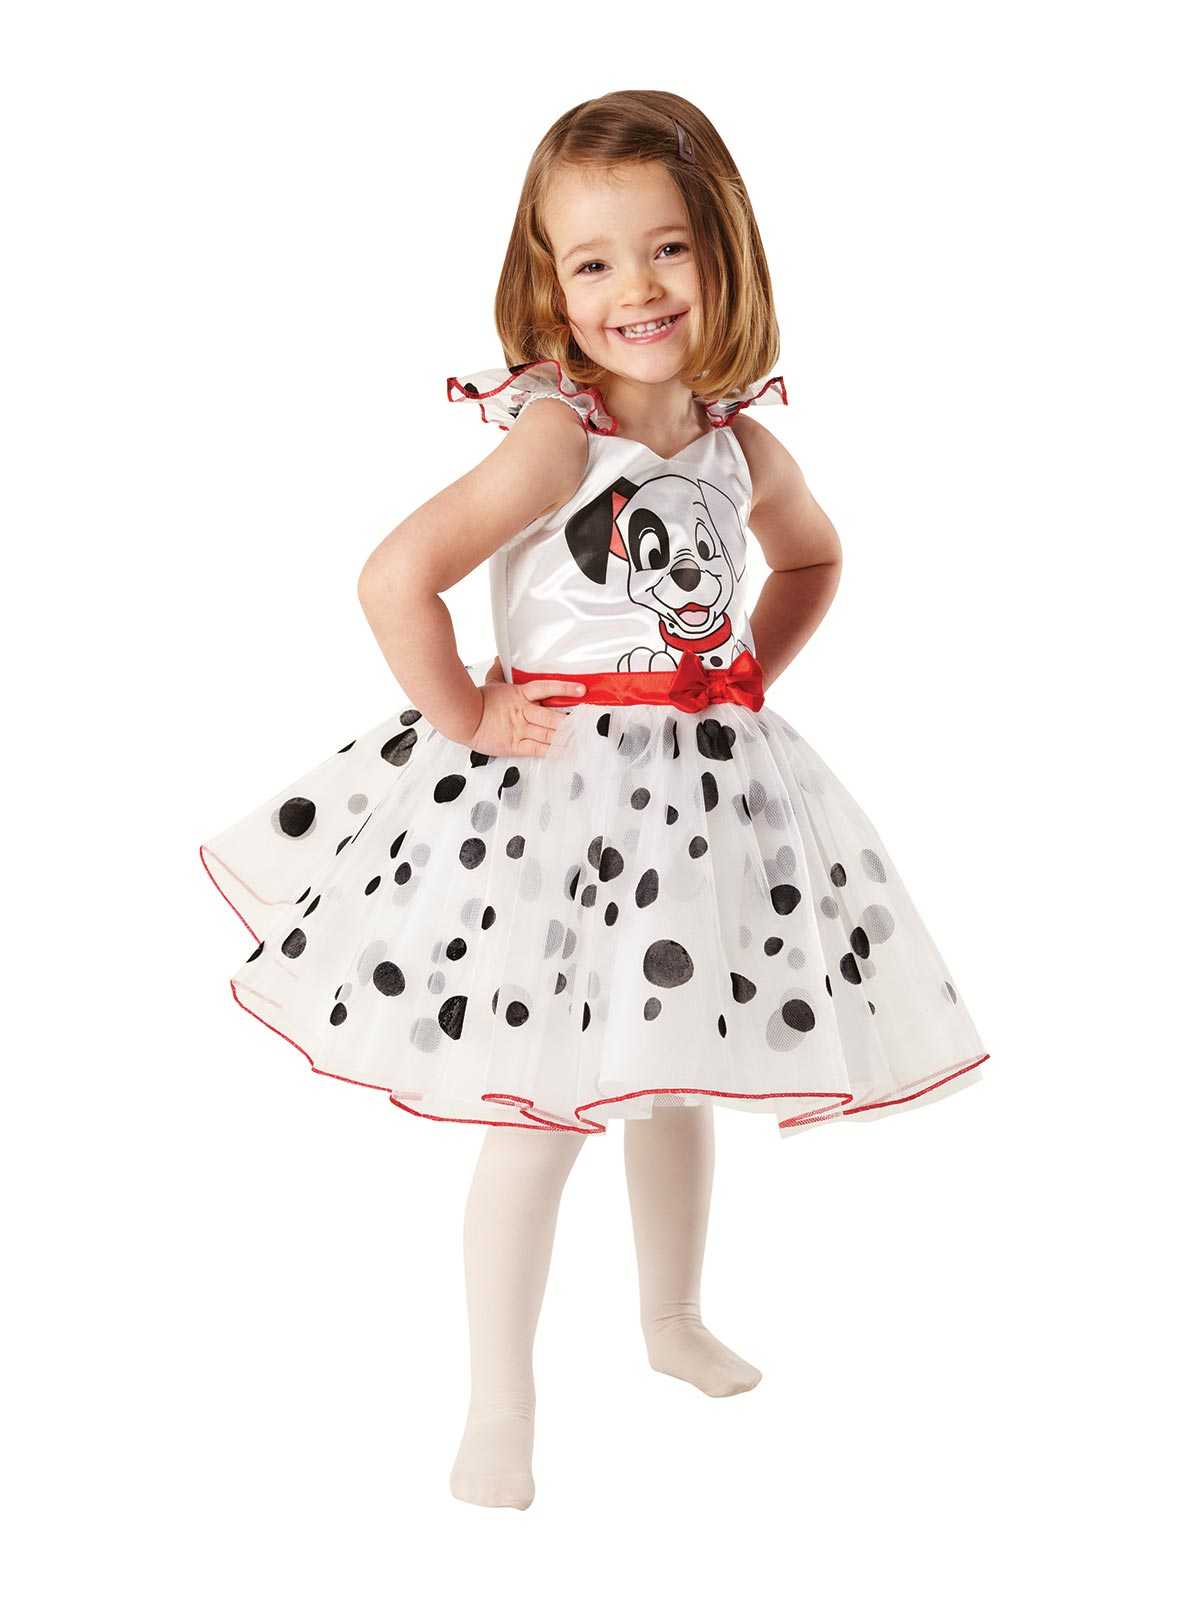 101 Dalmatians Child Costume - Buy Online Only